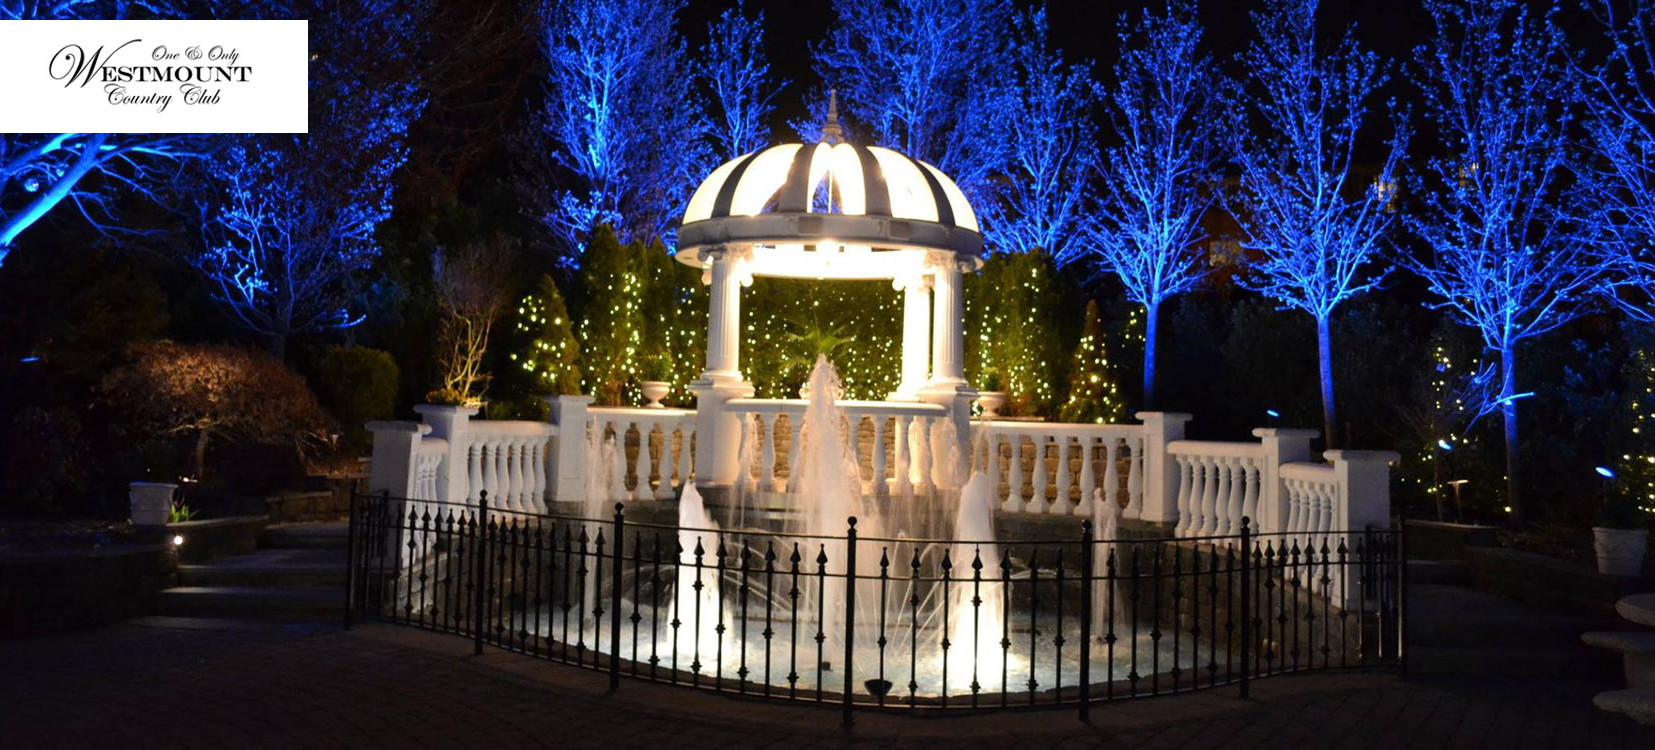 Nighttime photo of the fountain at The Westmount Country Club